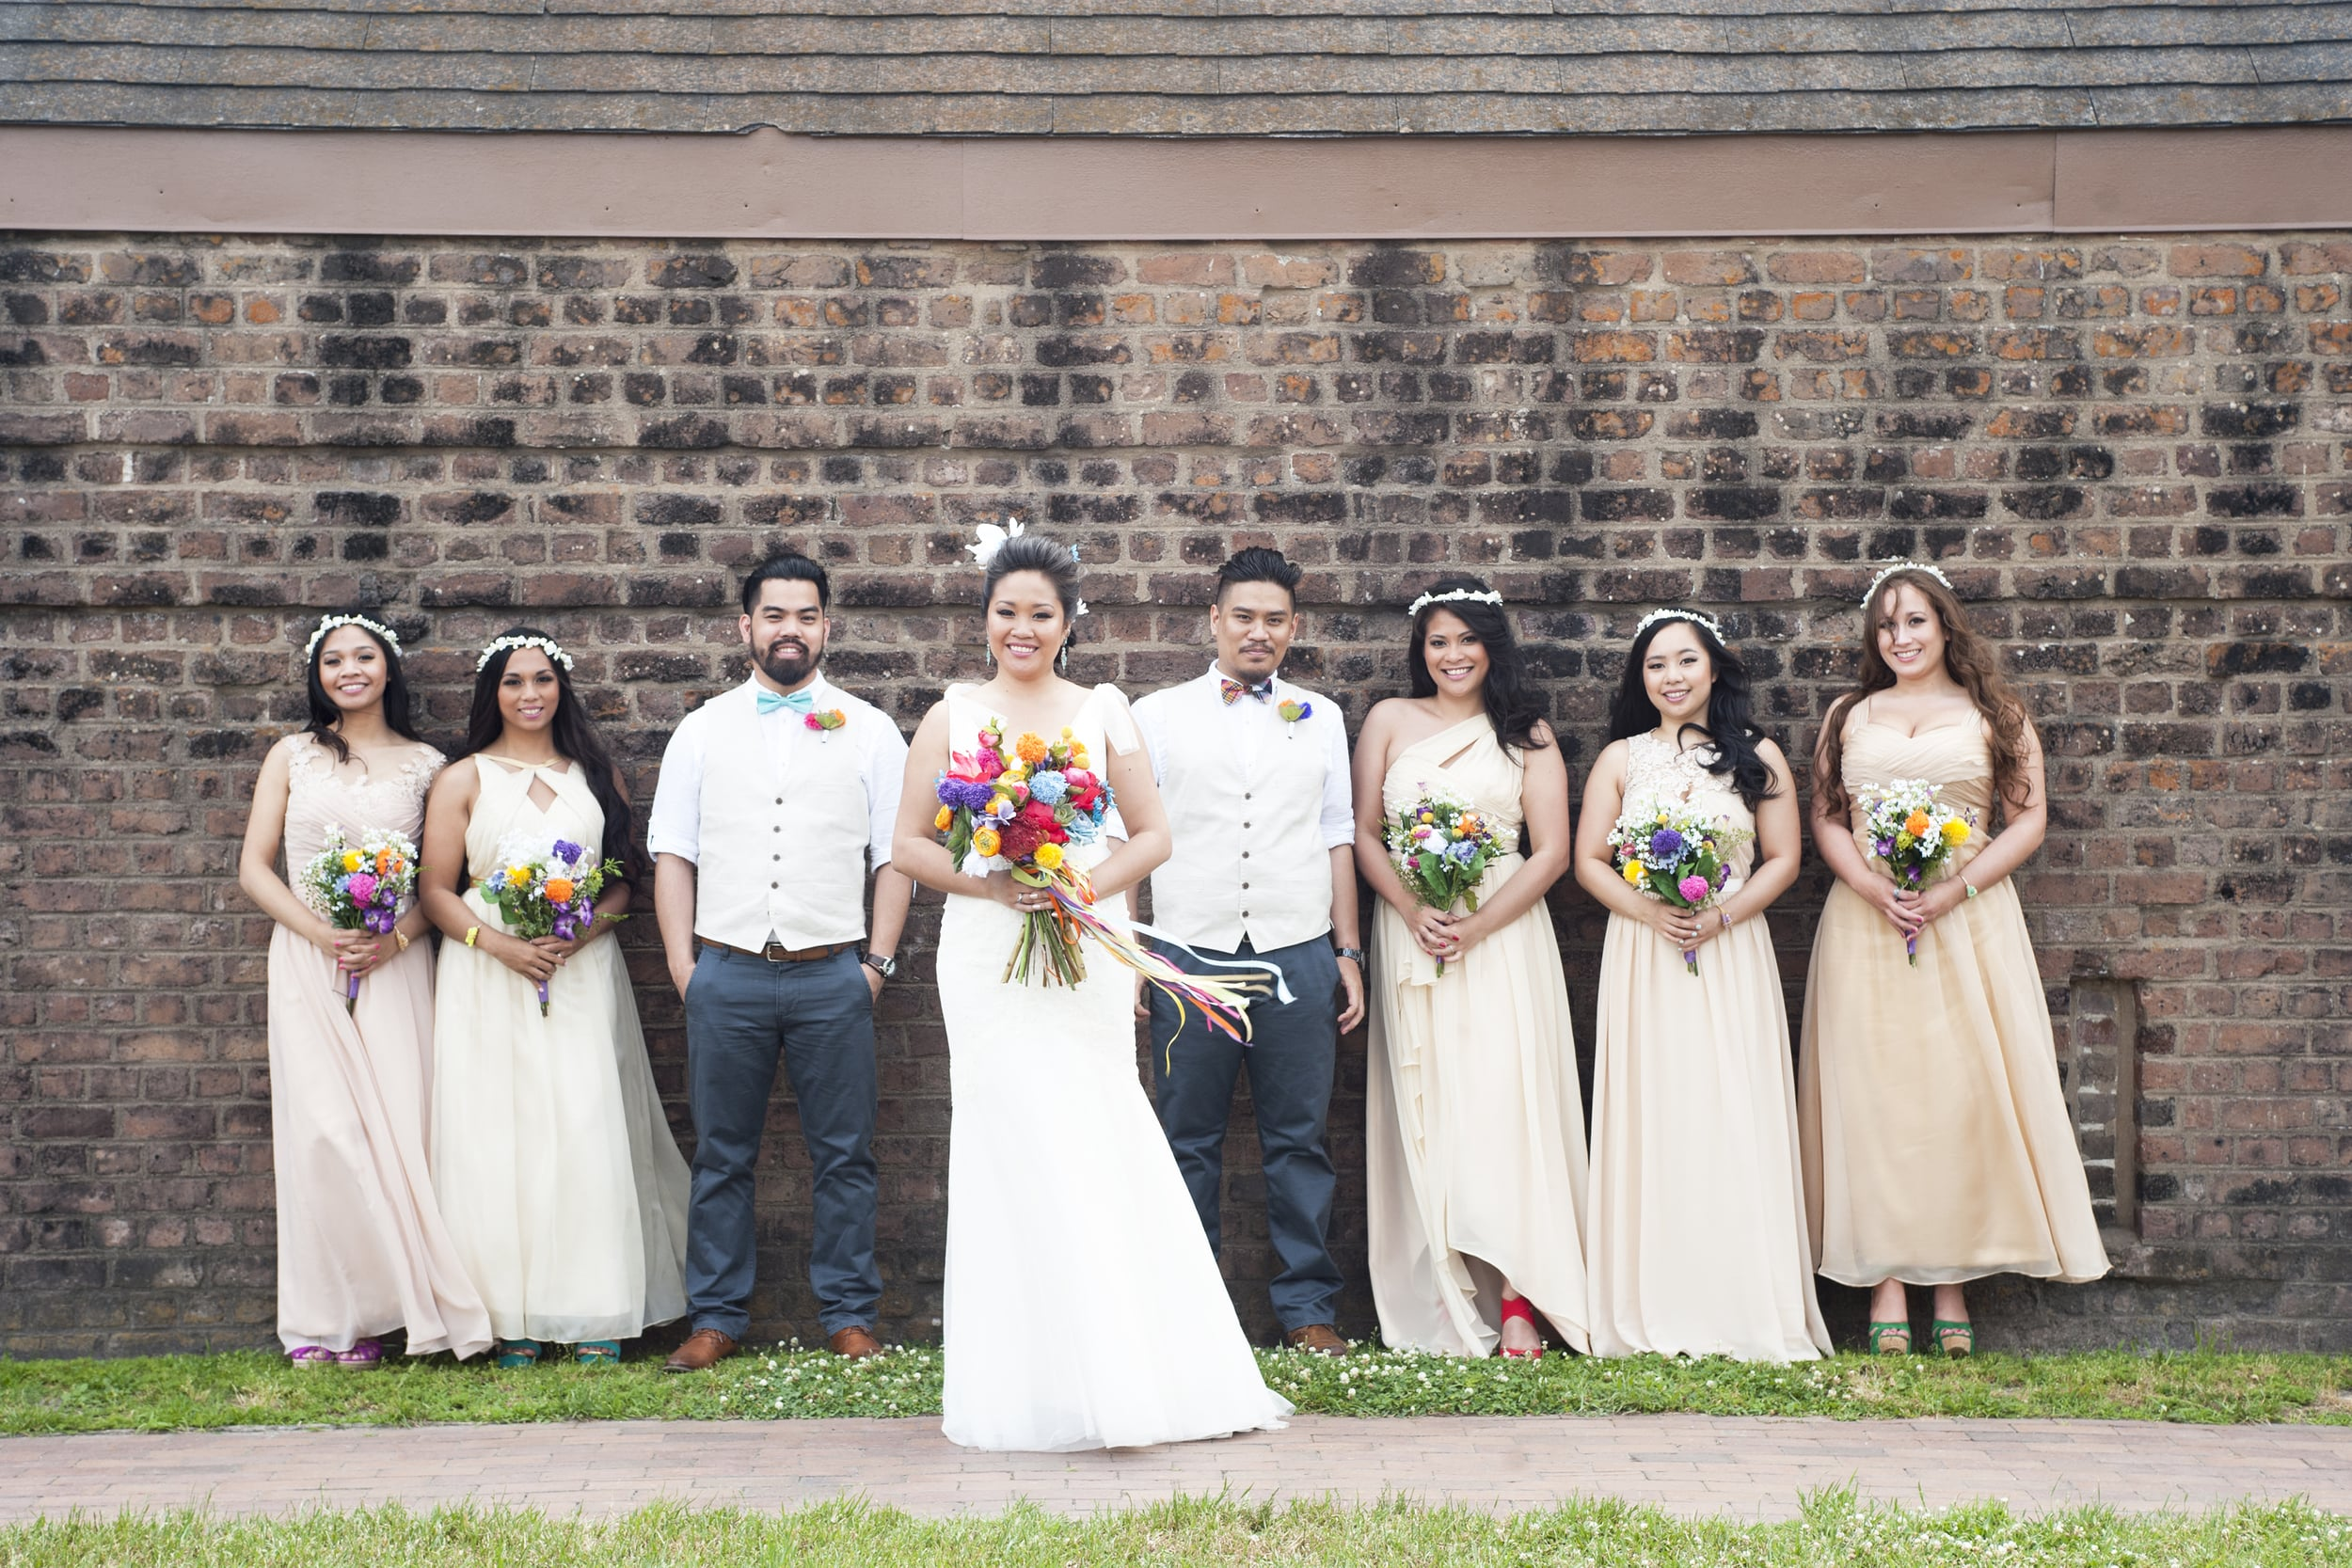 jeff-and-mollie-take-pictures-ivory-and-beau-wedding-planning-ivory-and-beau-bridal-boutique-old-fort-jackson-wedding-colorful-wedding-savannah-wedding-planner-savannah-weddings-michelle-and-johnny-wedding-savannah-weddings-indie-wedding-16.jpg